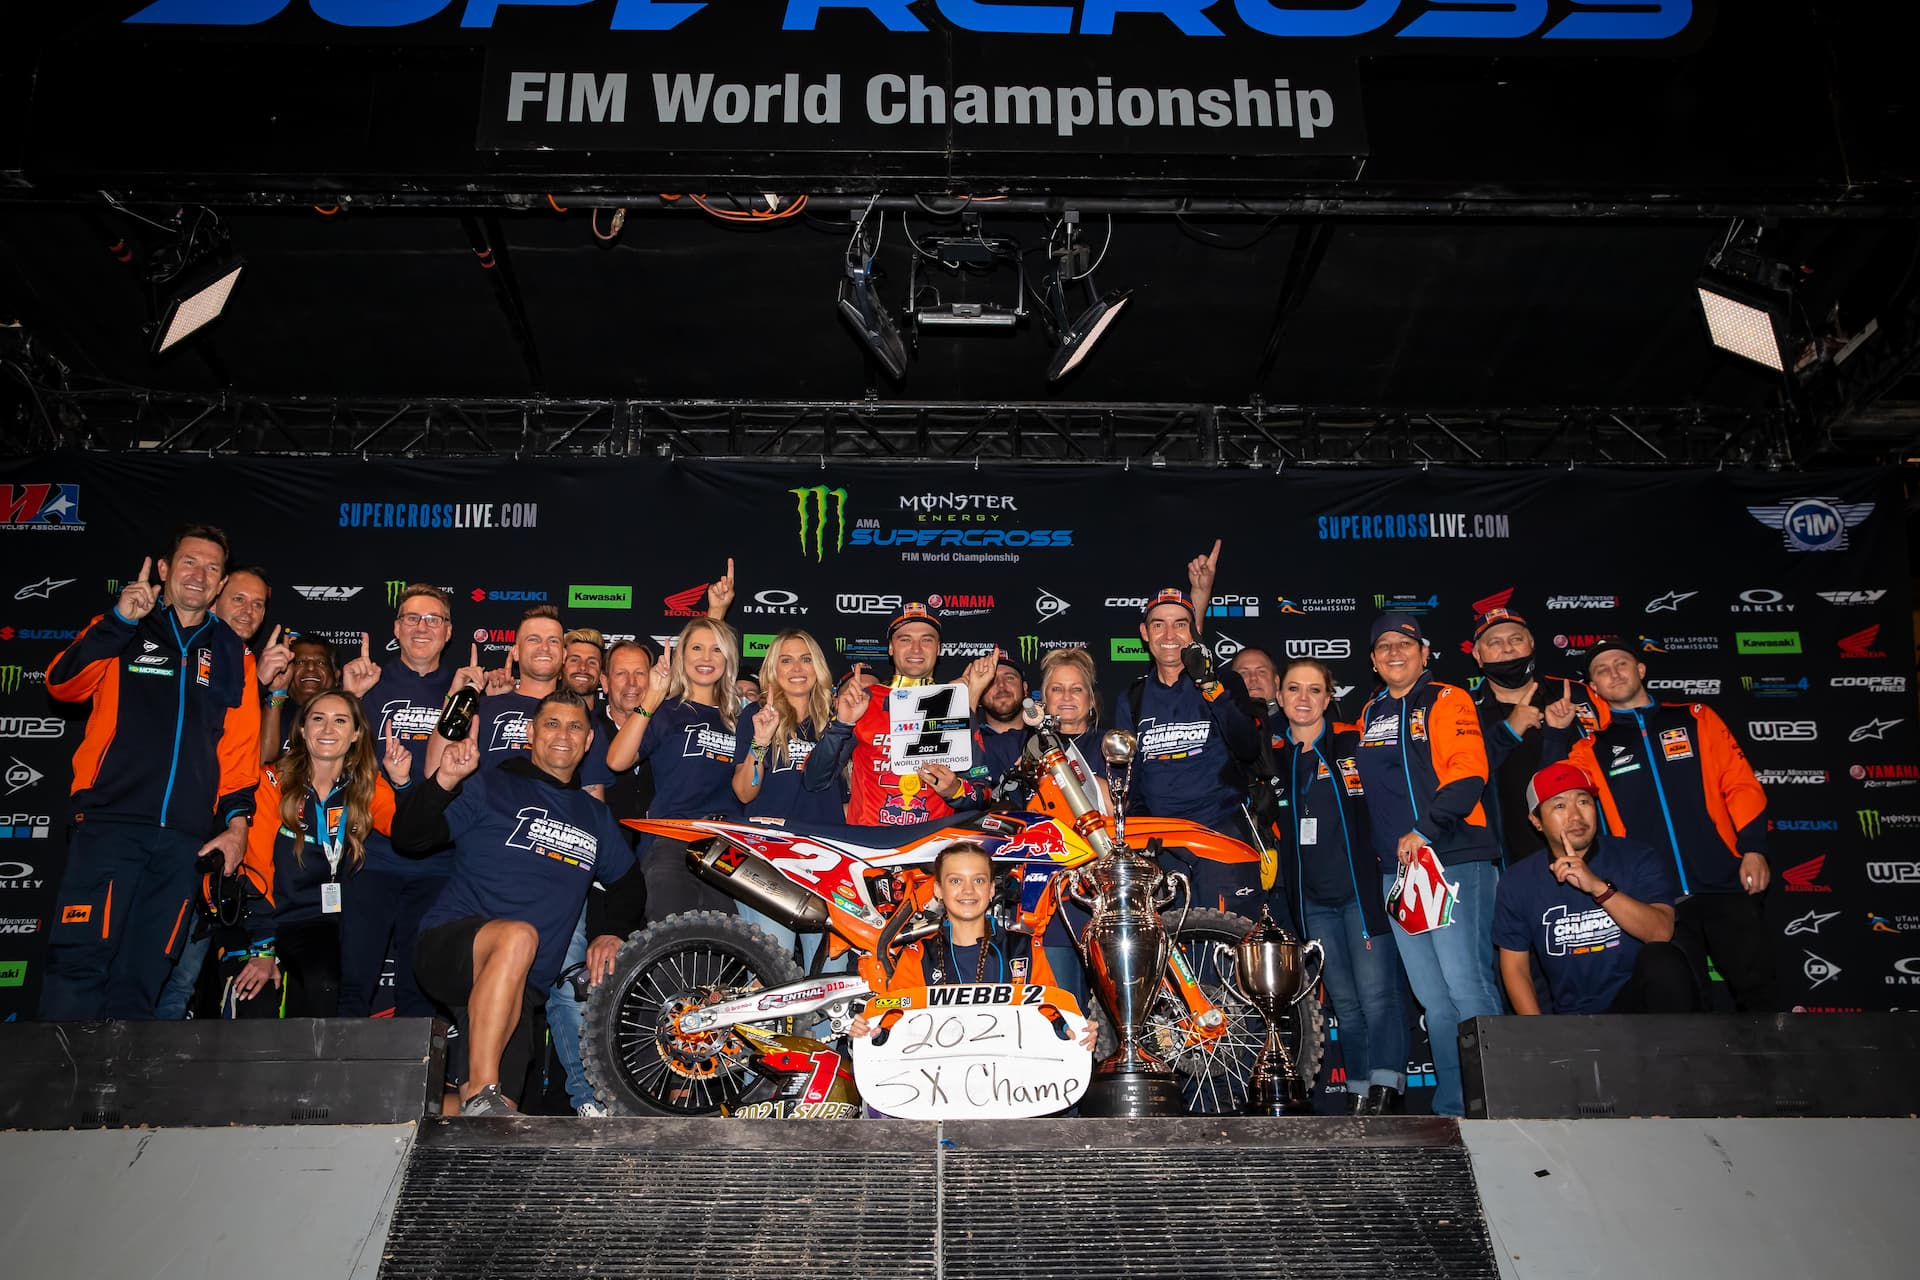 Cooper Webb celebrates with his KTM team on his second Monster Energy AMA 450 Supercross championship. Photo by Feld Entertainment, Inc.